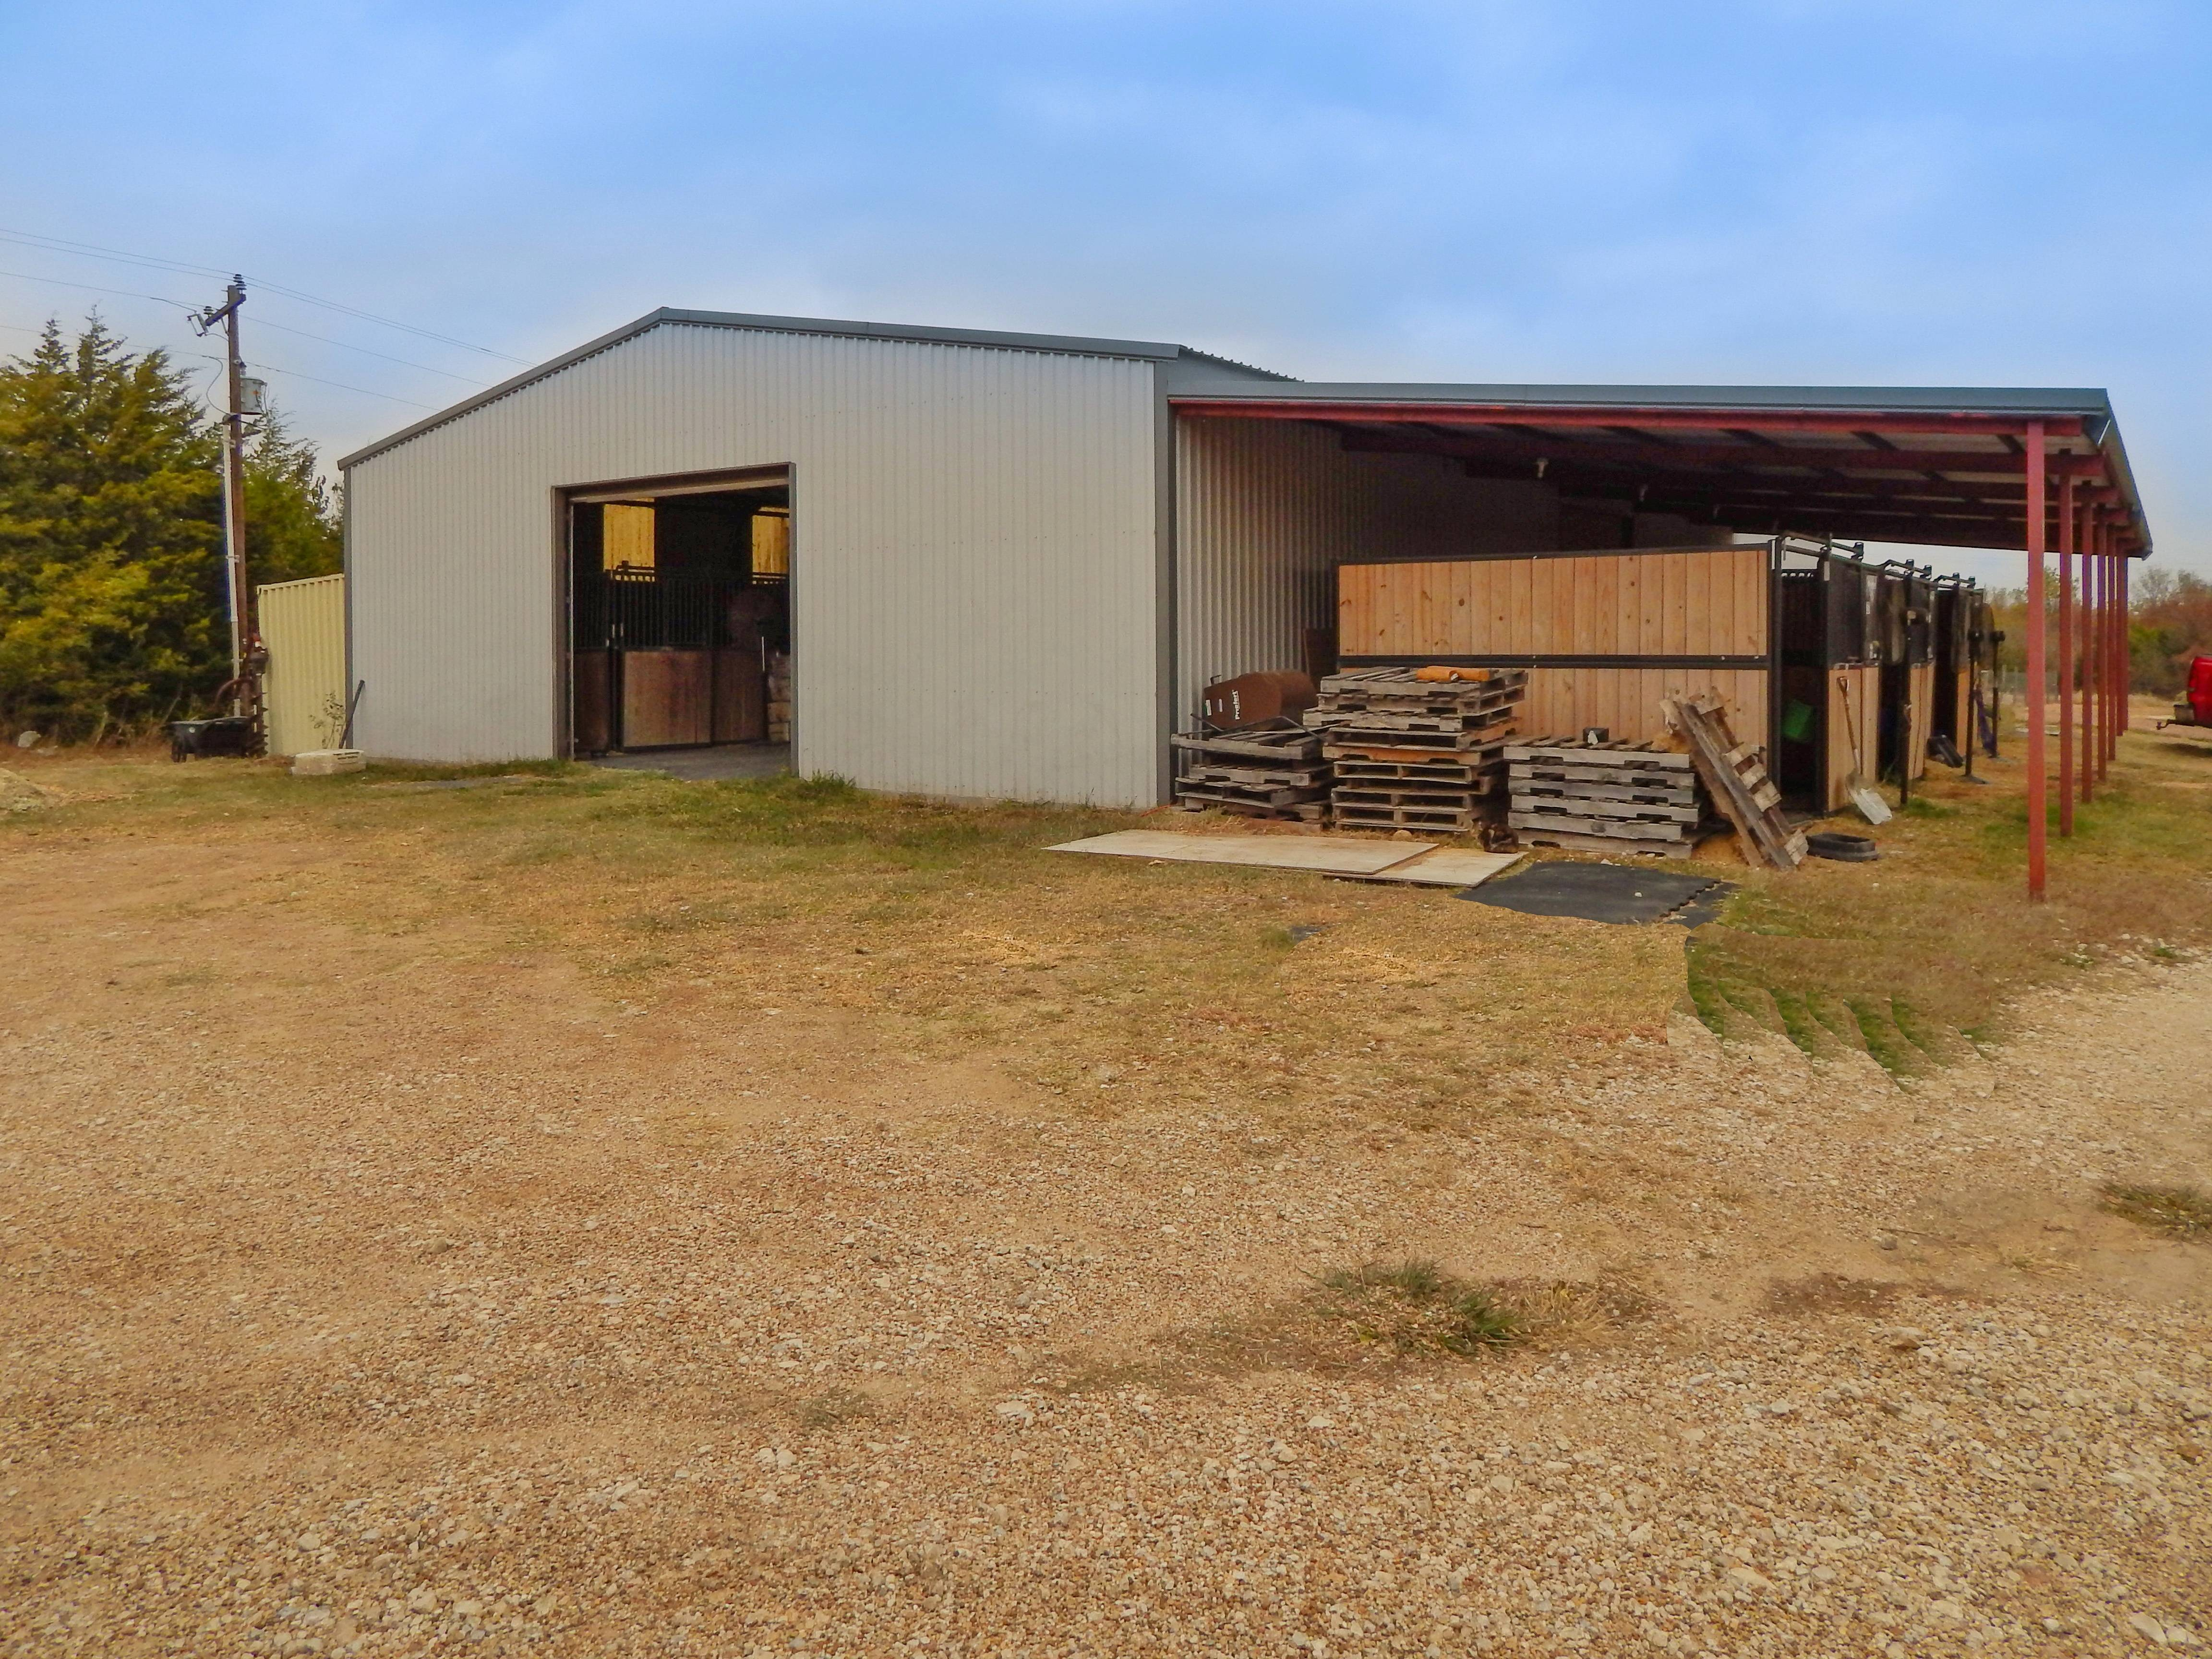 Horse Property For Sale In Rockwall Tx 61 Acres Ranch